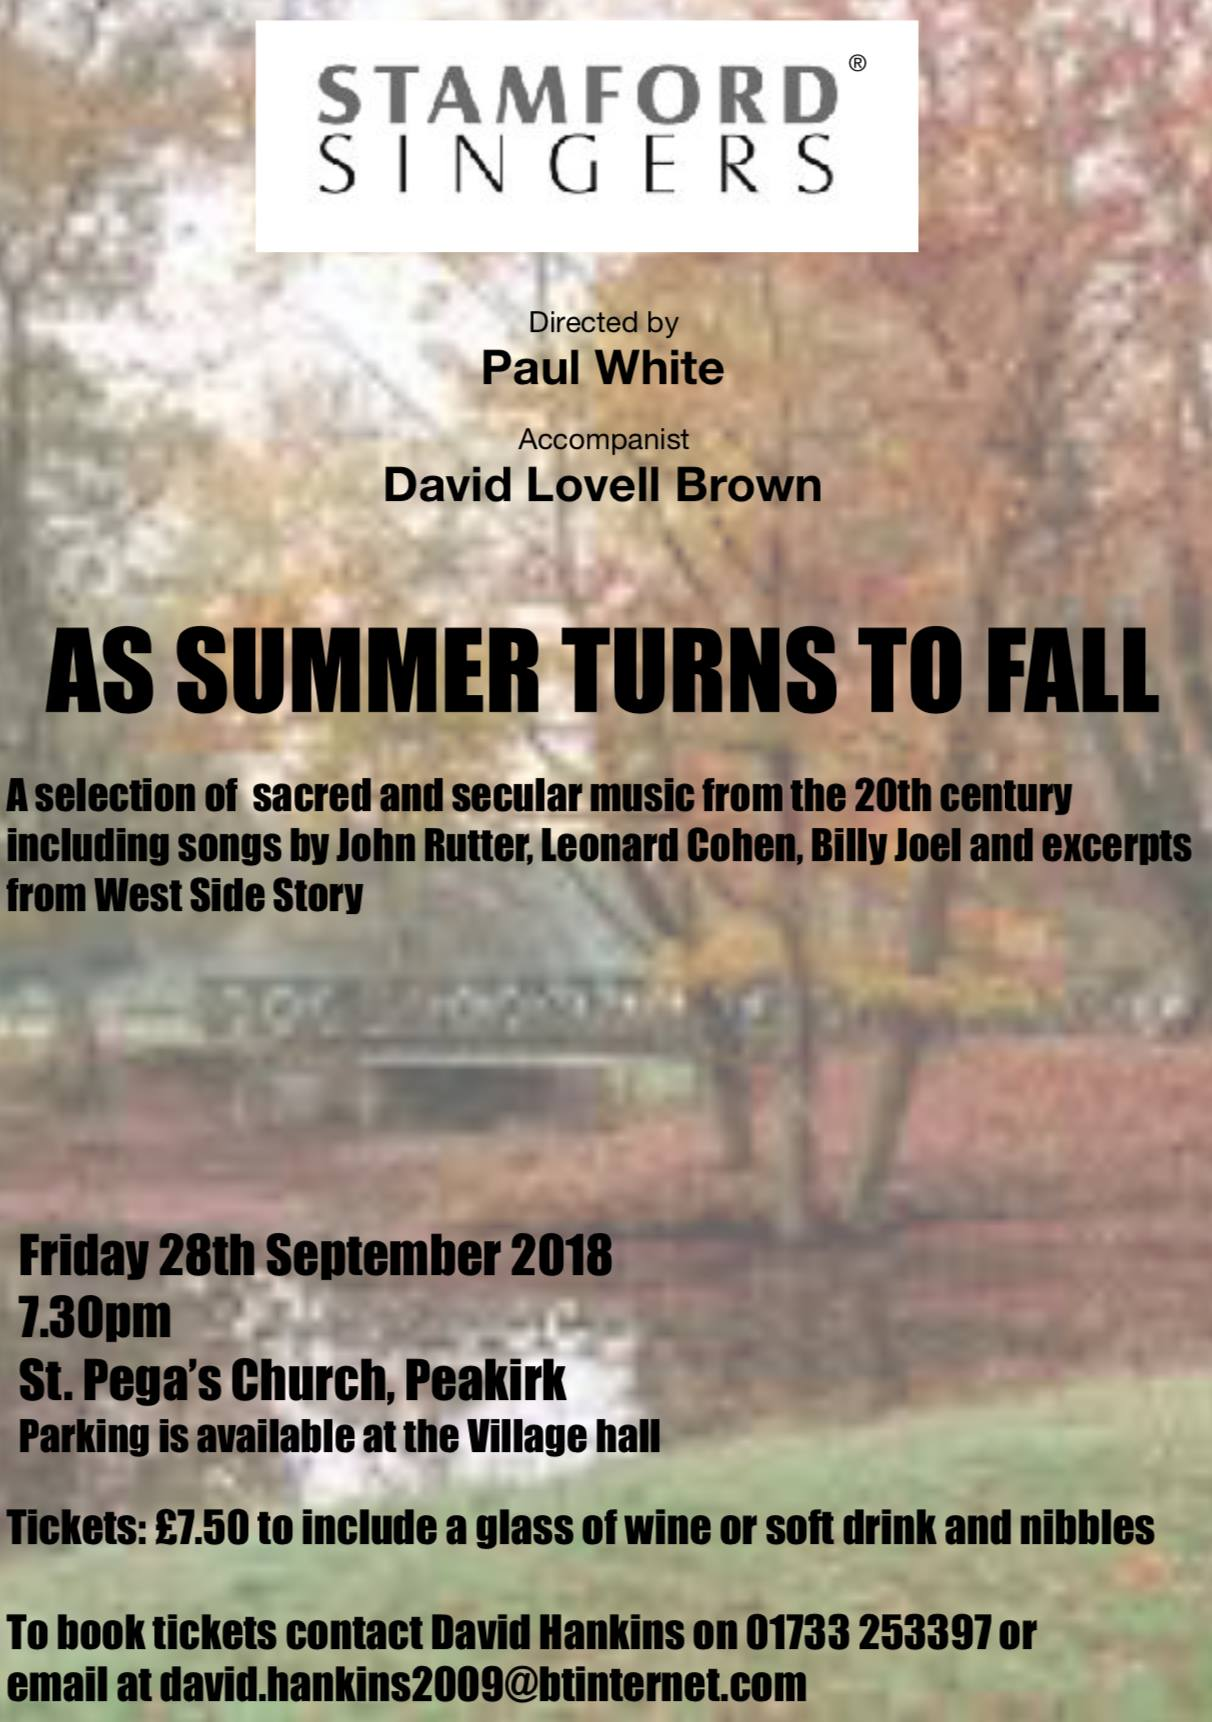 Stamford Singers at St Pega's Church 28th September